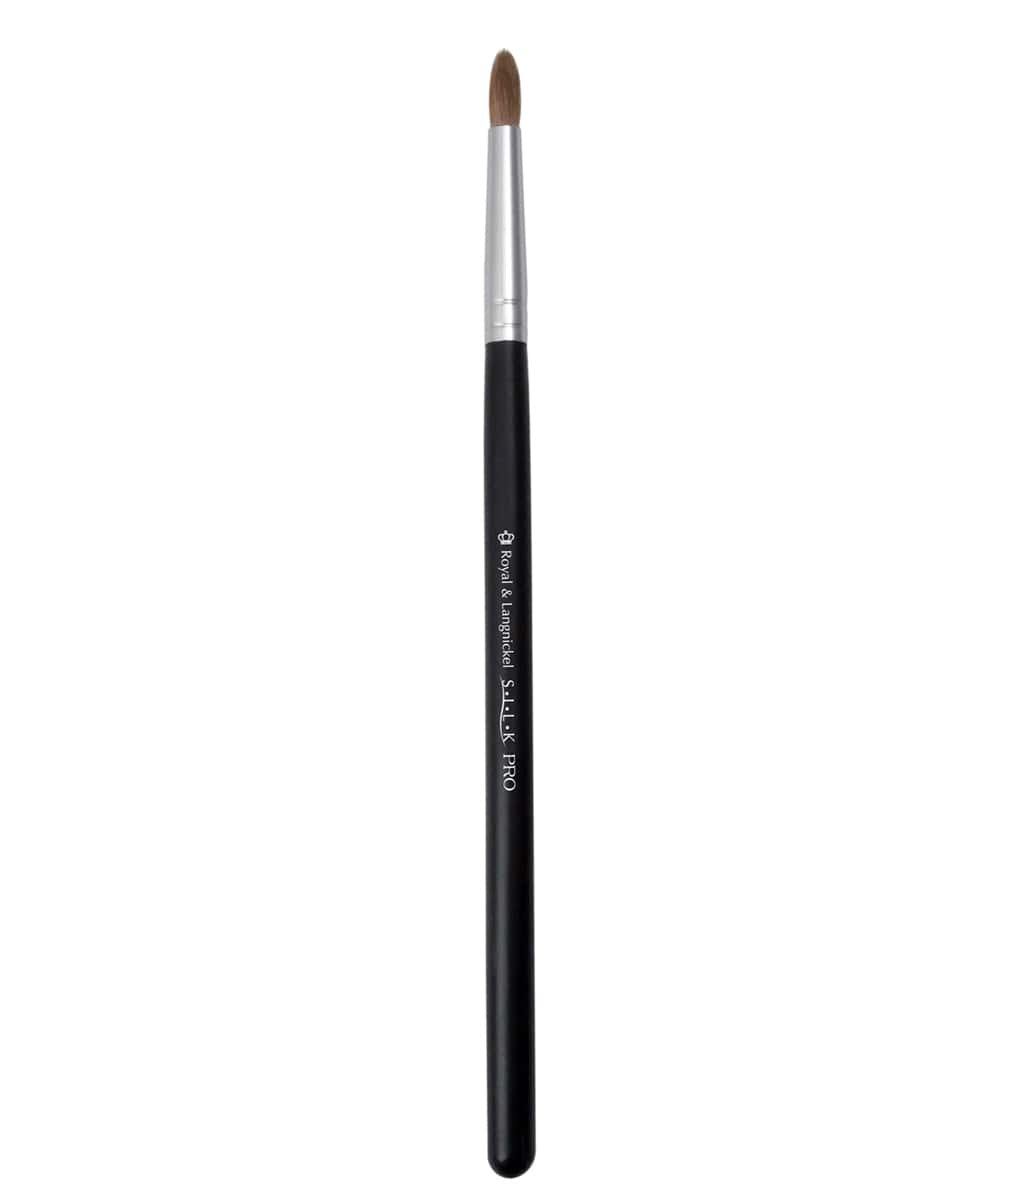 Pointed Liner Brush